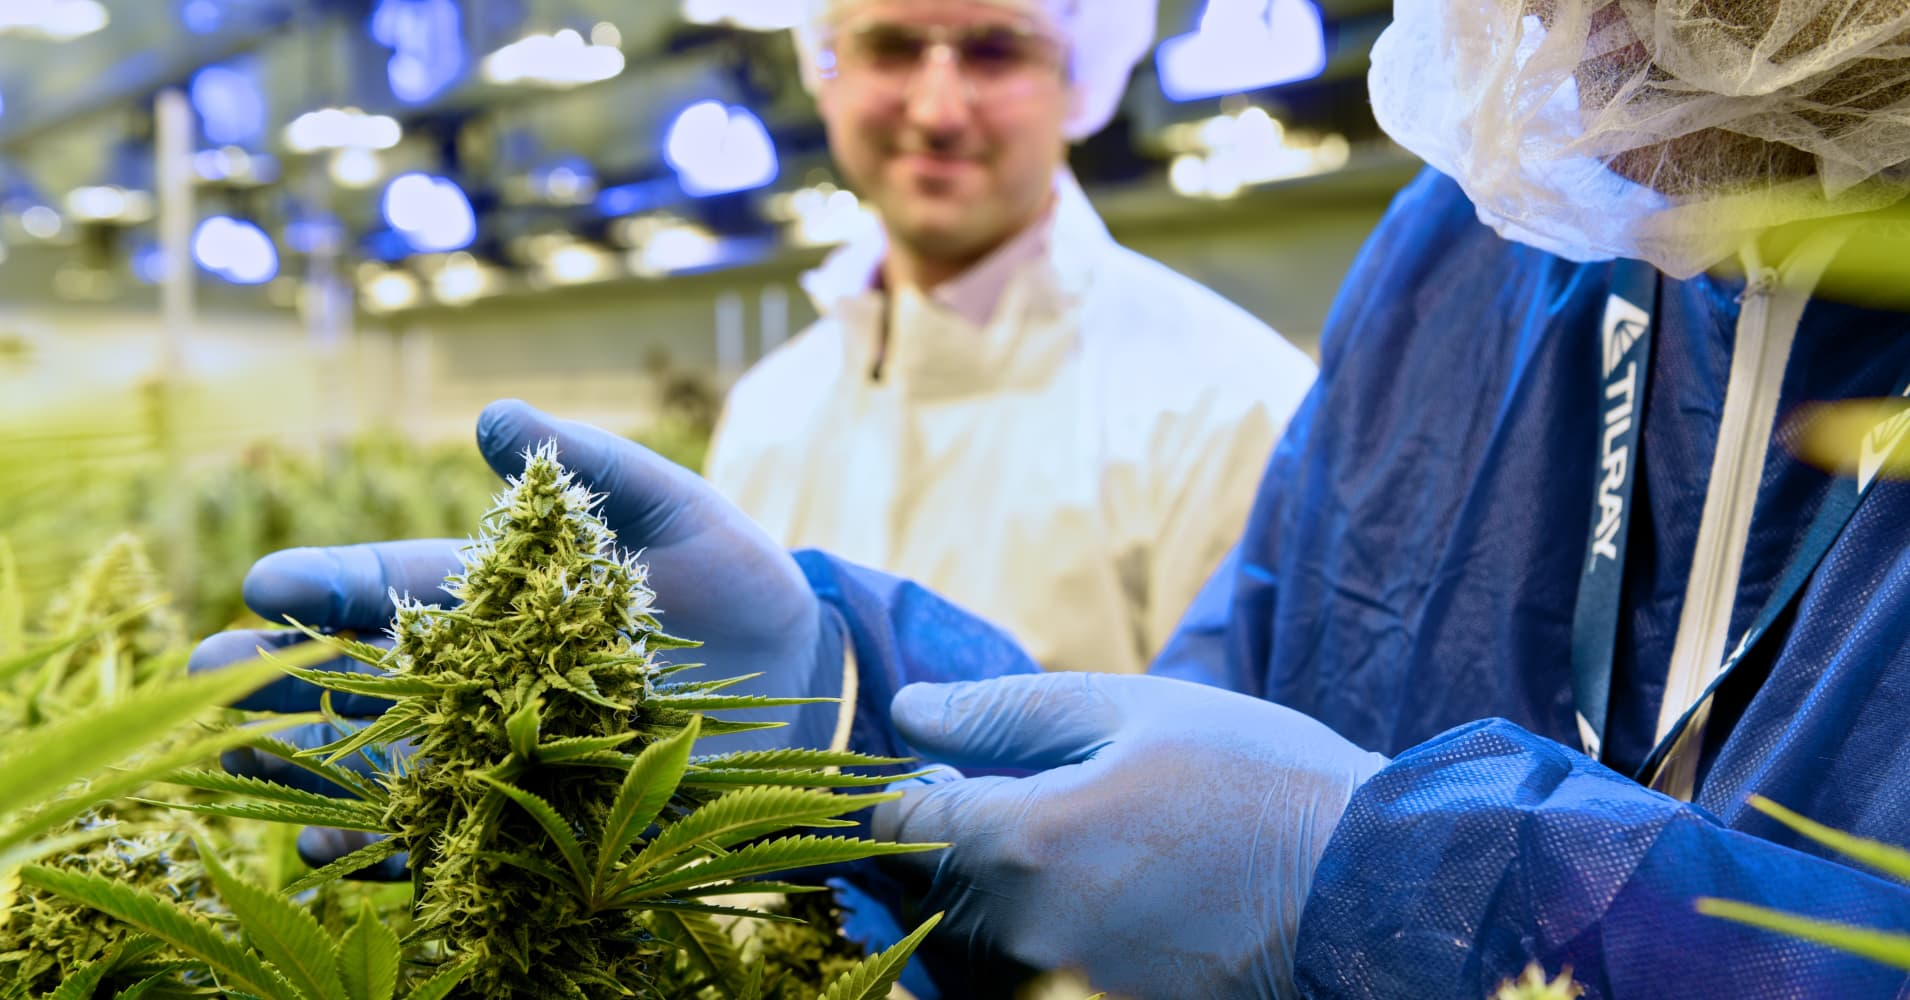 Marijuana grower Tilray rallies after sales more than double